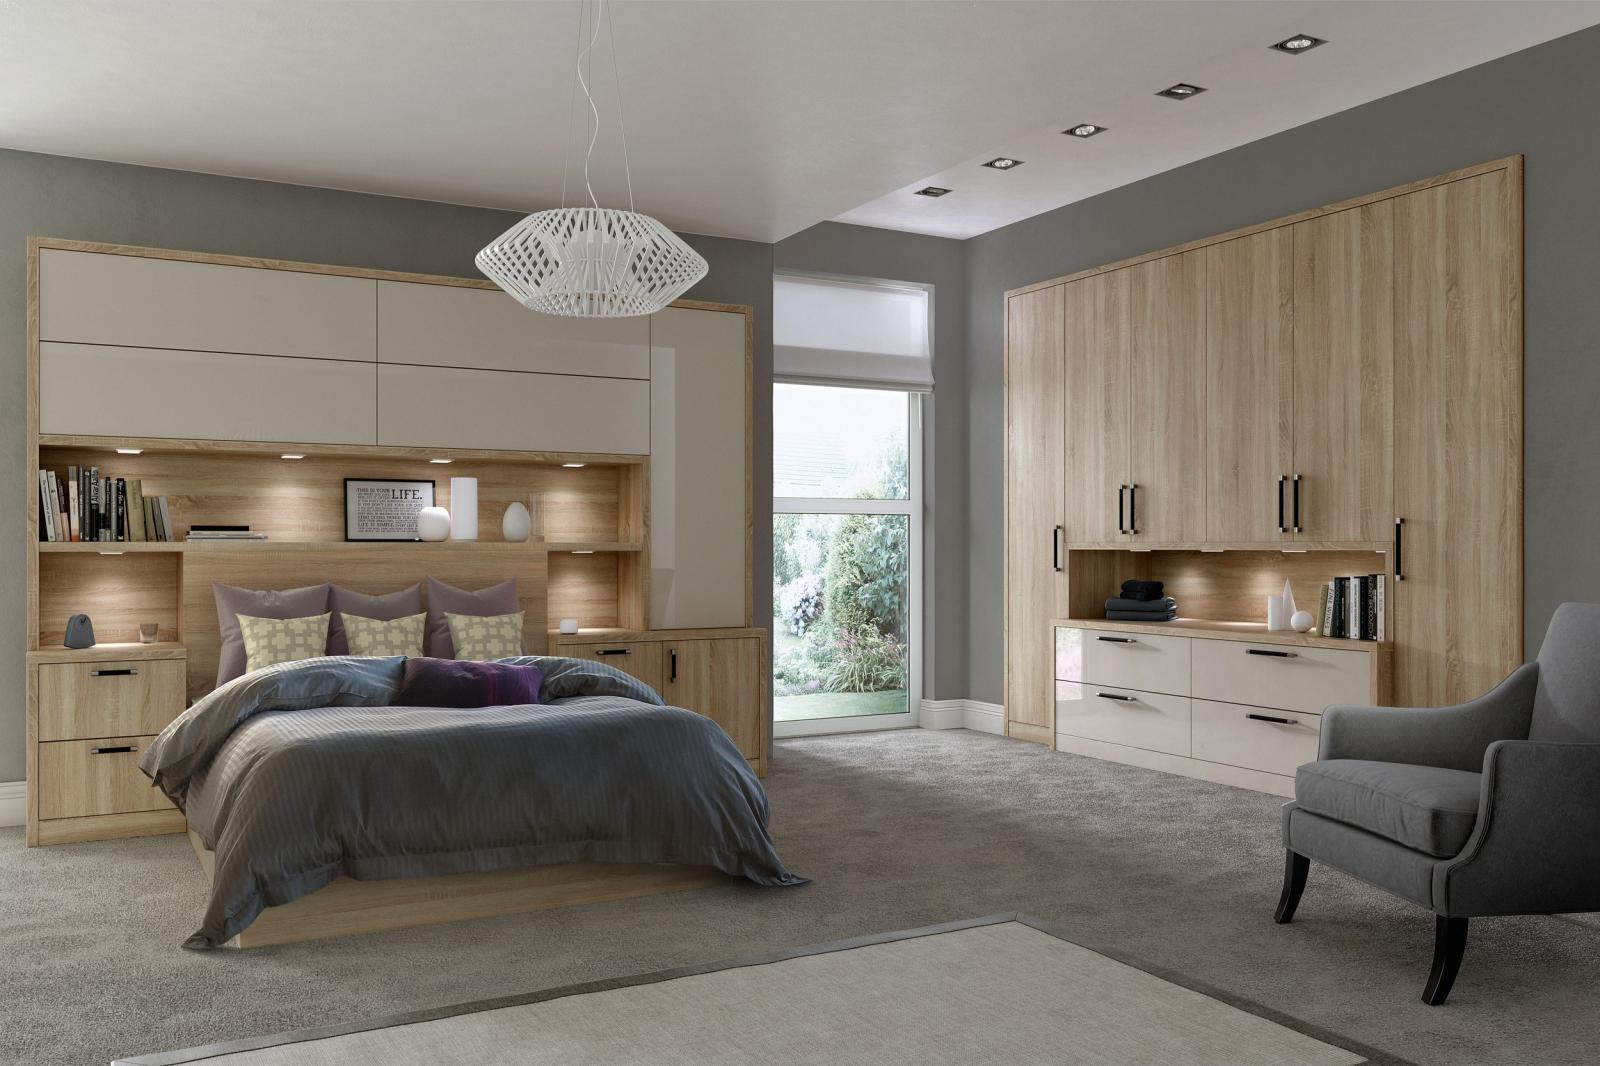 Bedroom Interior Design Services Hull and East Yorkshire